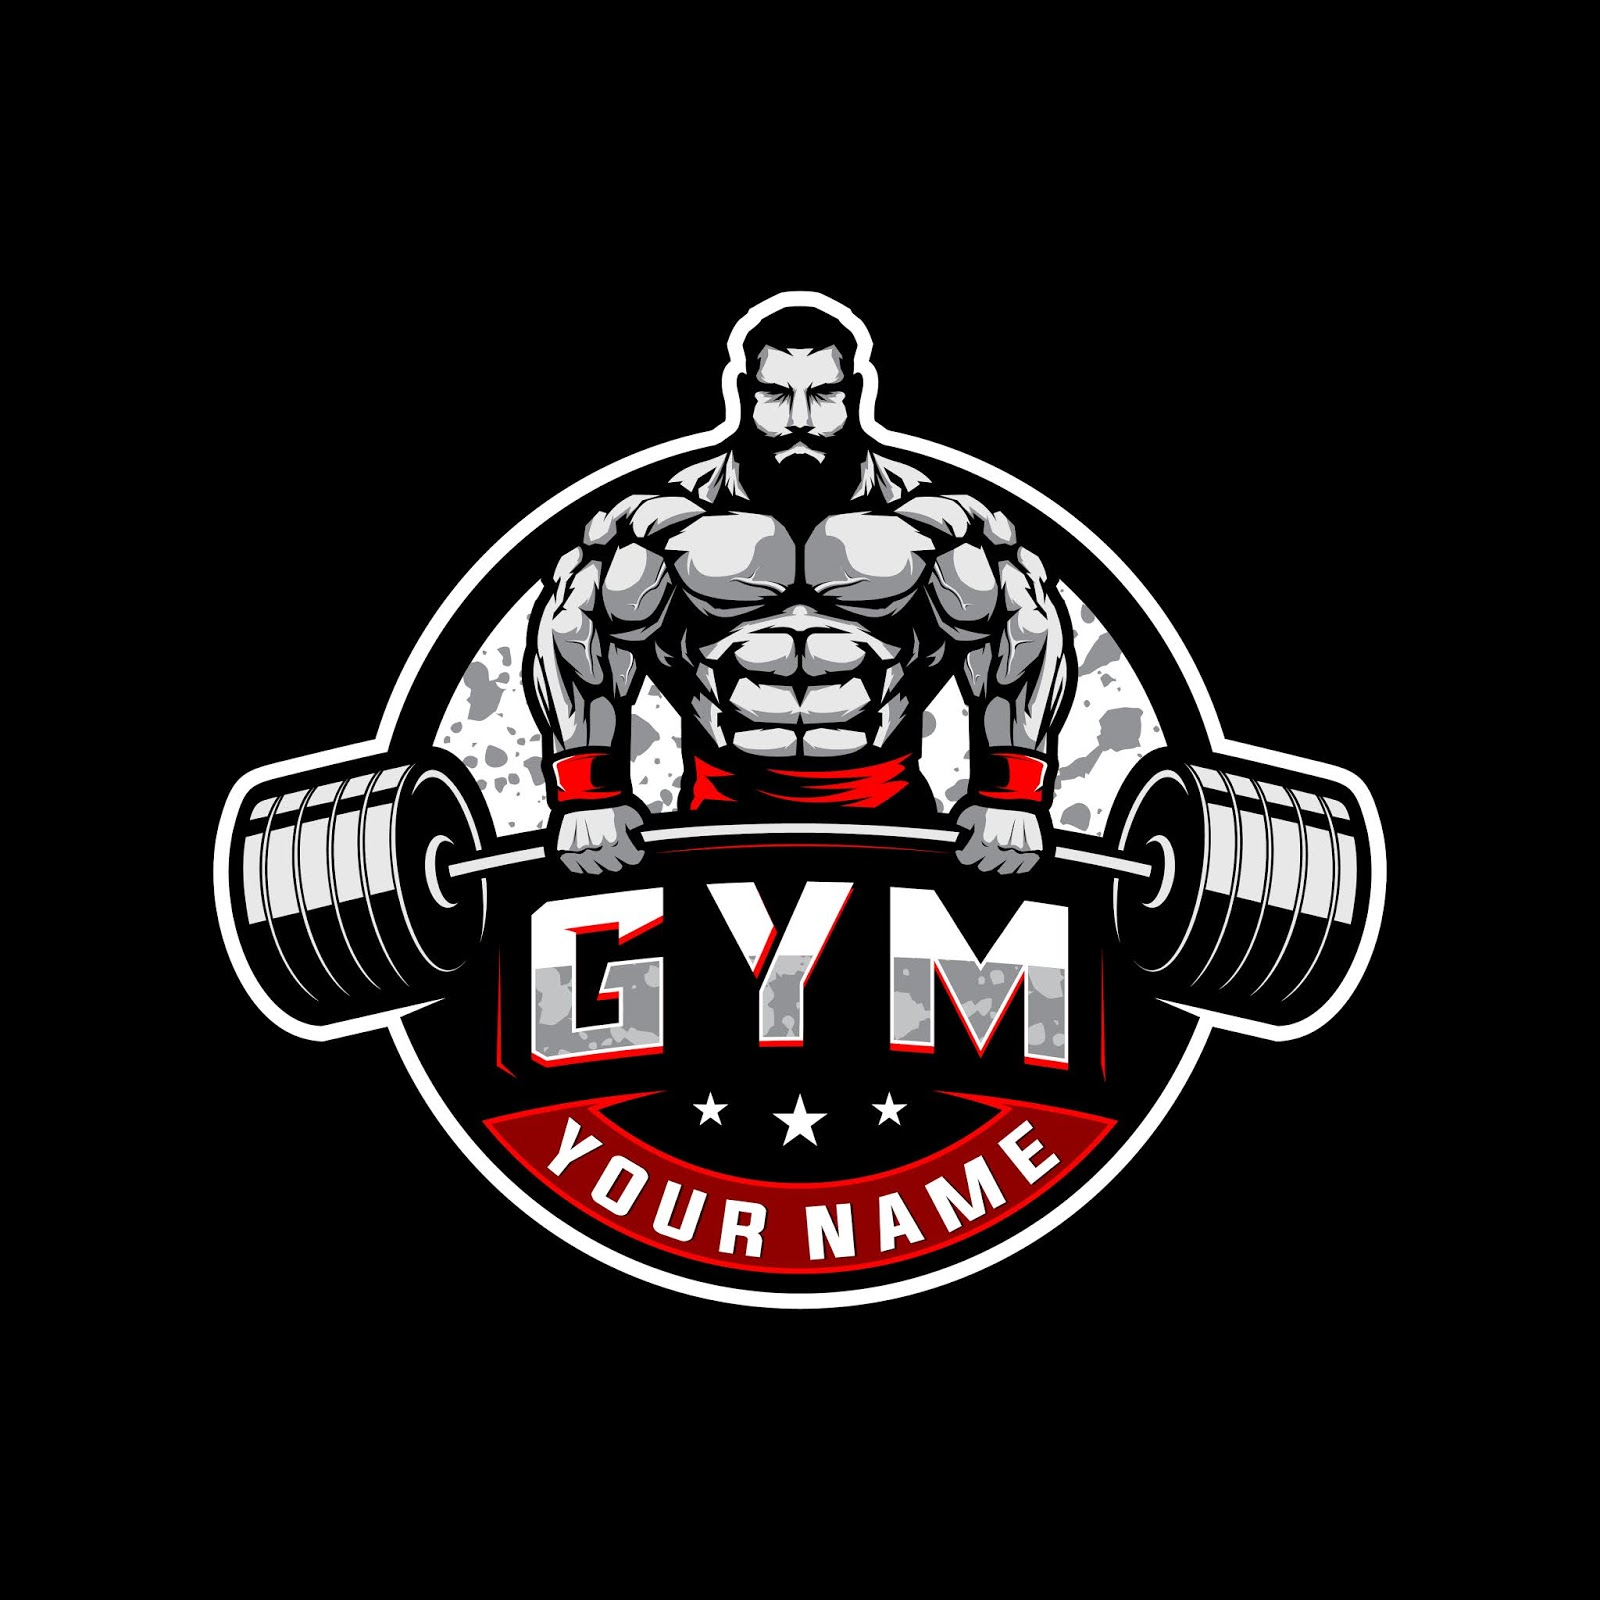 Bodybuilding Gym Logo Free Download Vector CDR, AI, EPS and PNG Formats